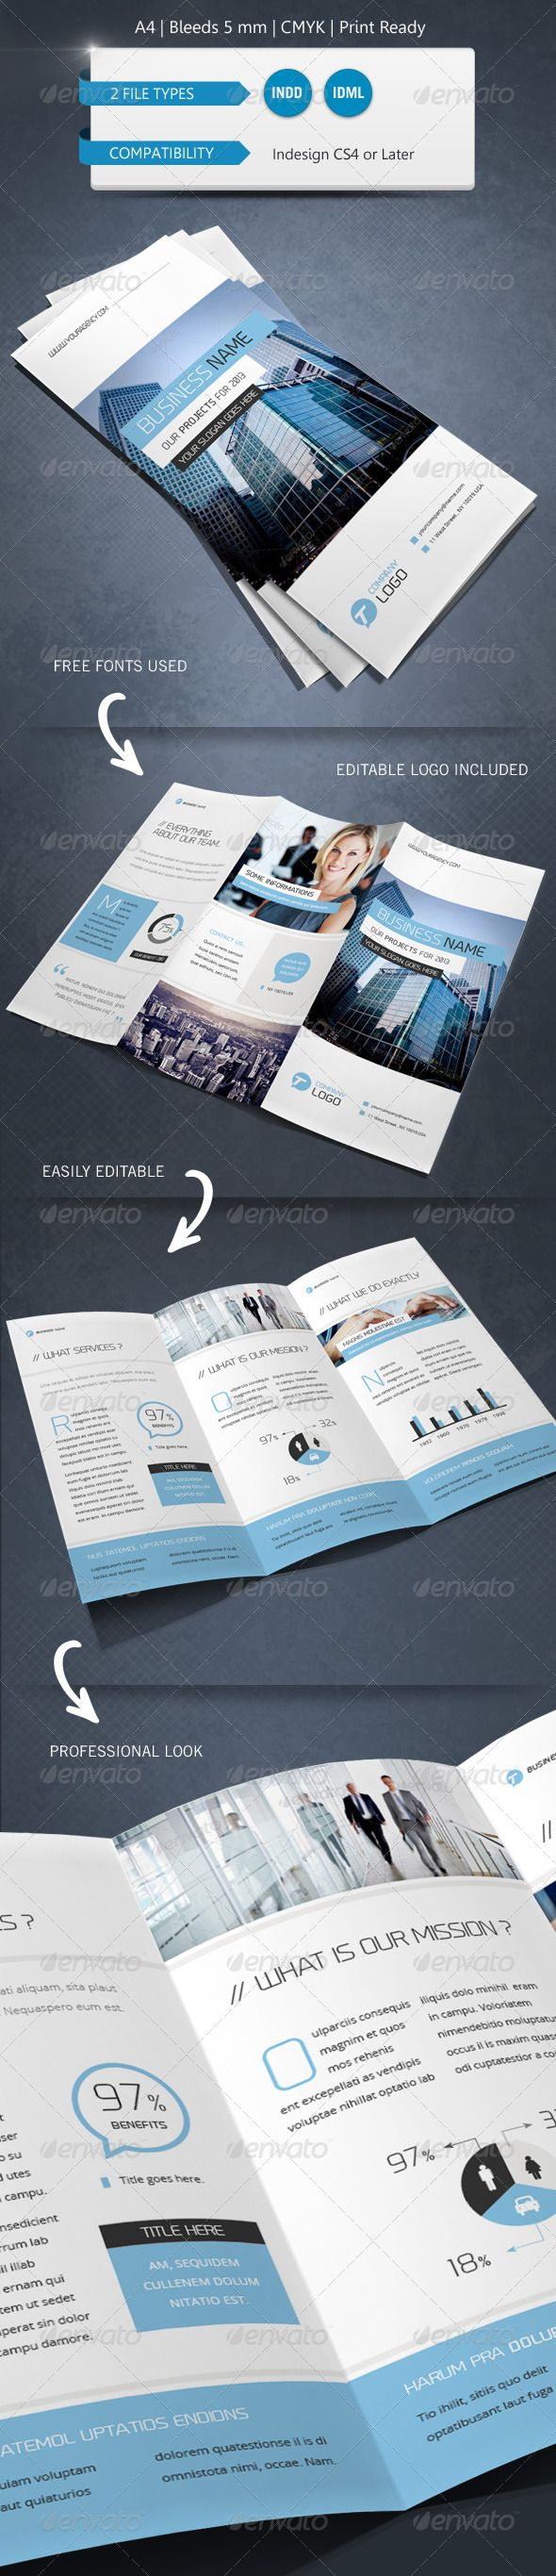 trifold brochure indesign template - corporate indesign trifold brochure template advertising